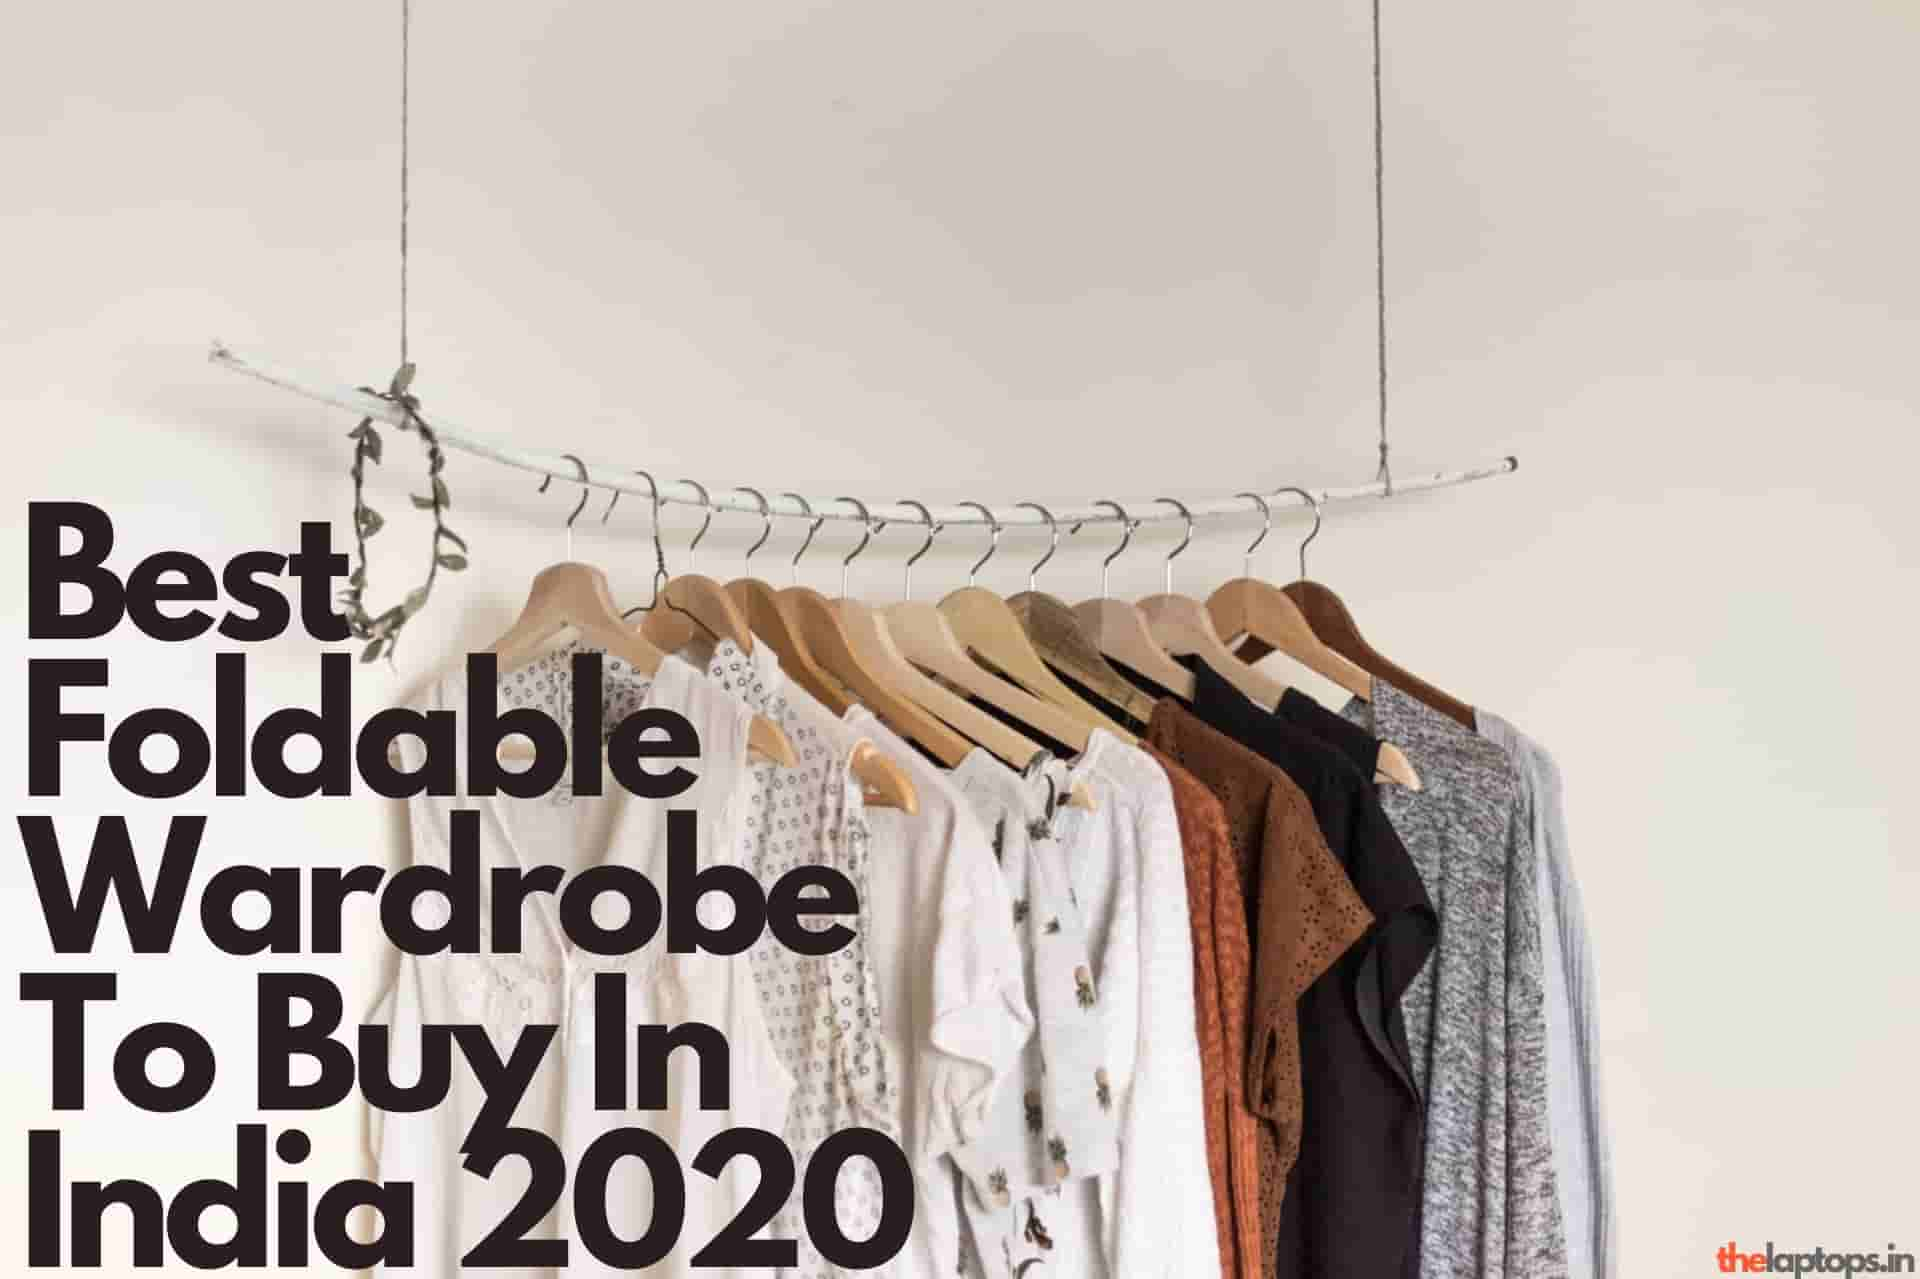 10 Best Foldable Wardrobe To Buy In India 2020